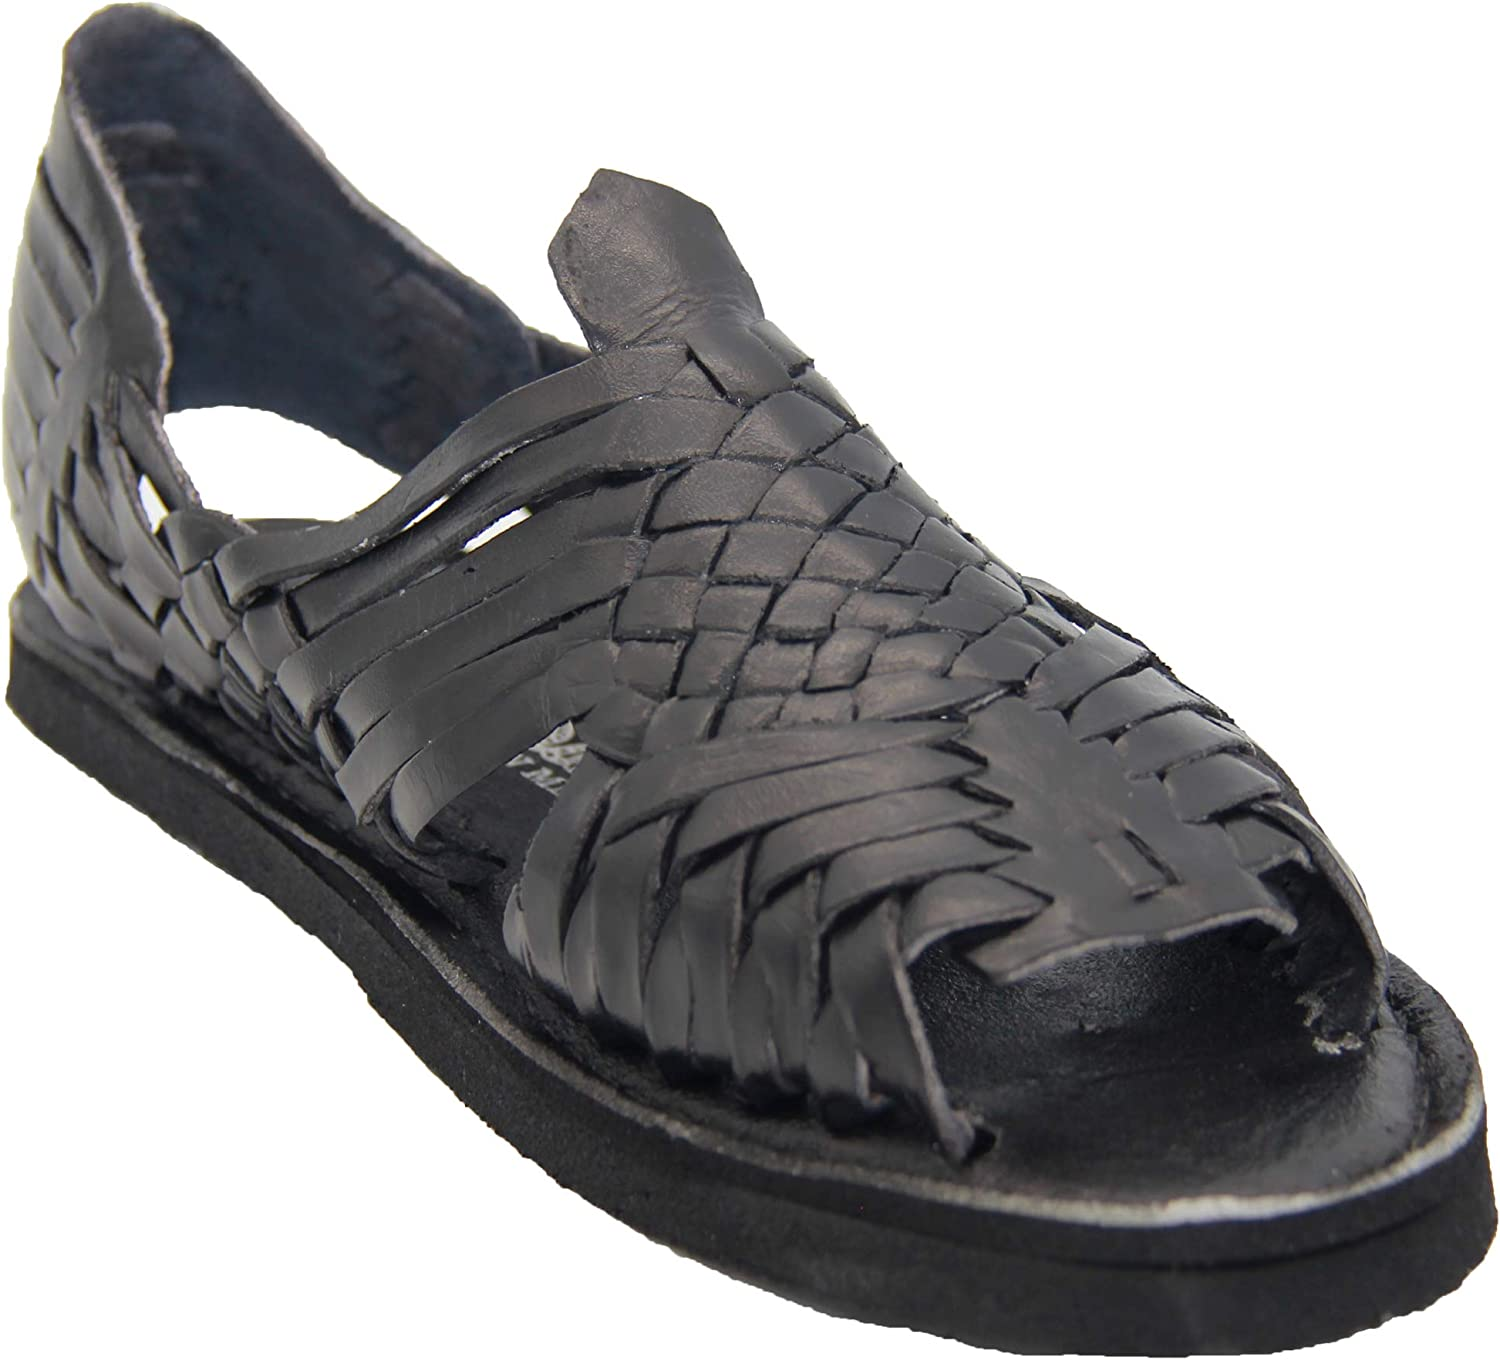 The New Orleans Mall Western Sale SALE% OFF Shops Mens Leather San Sandals Huarache Mexican